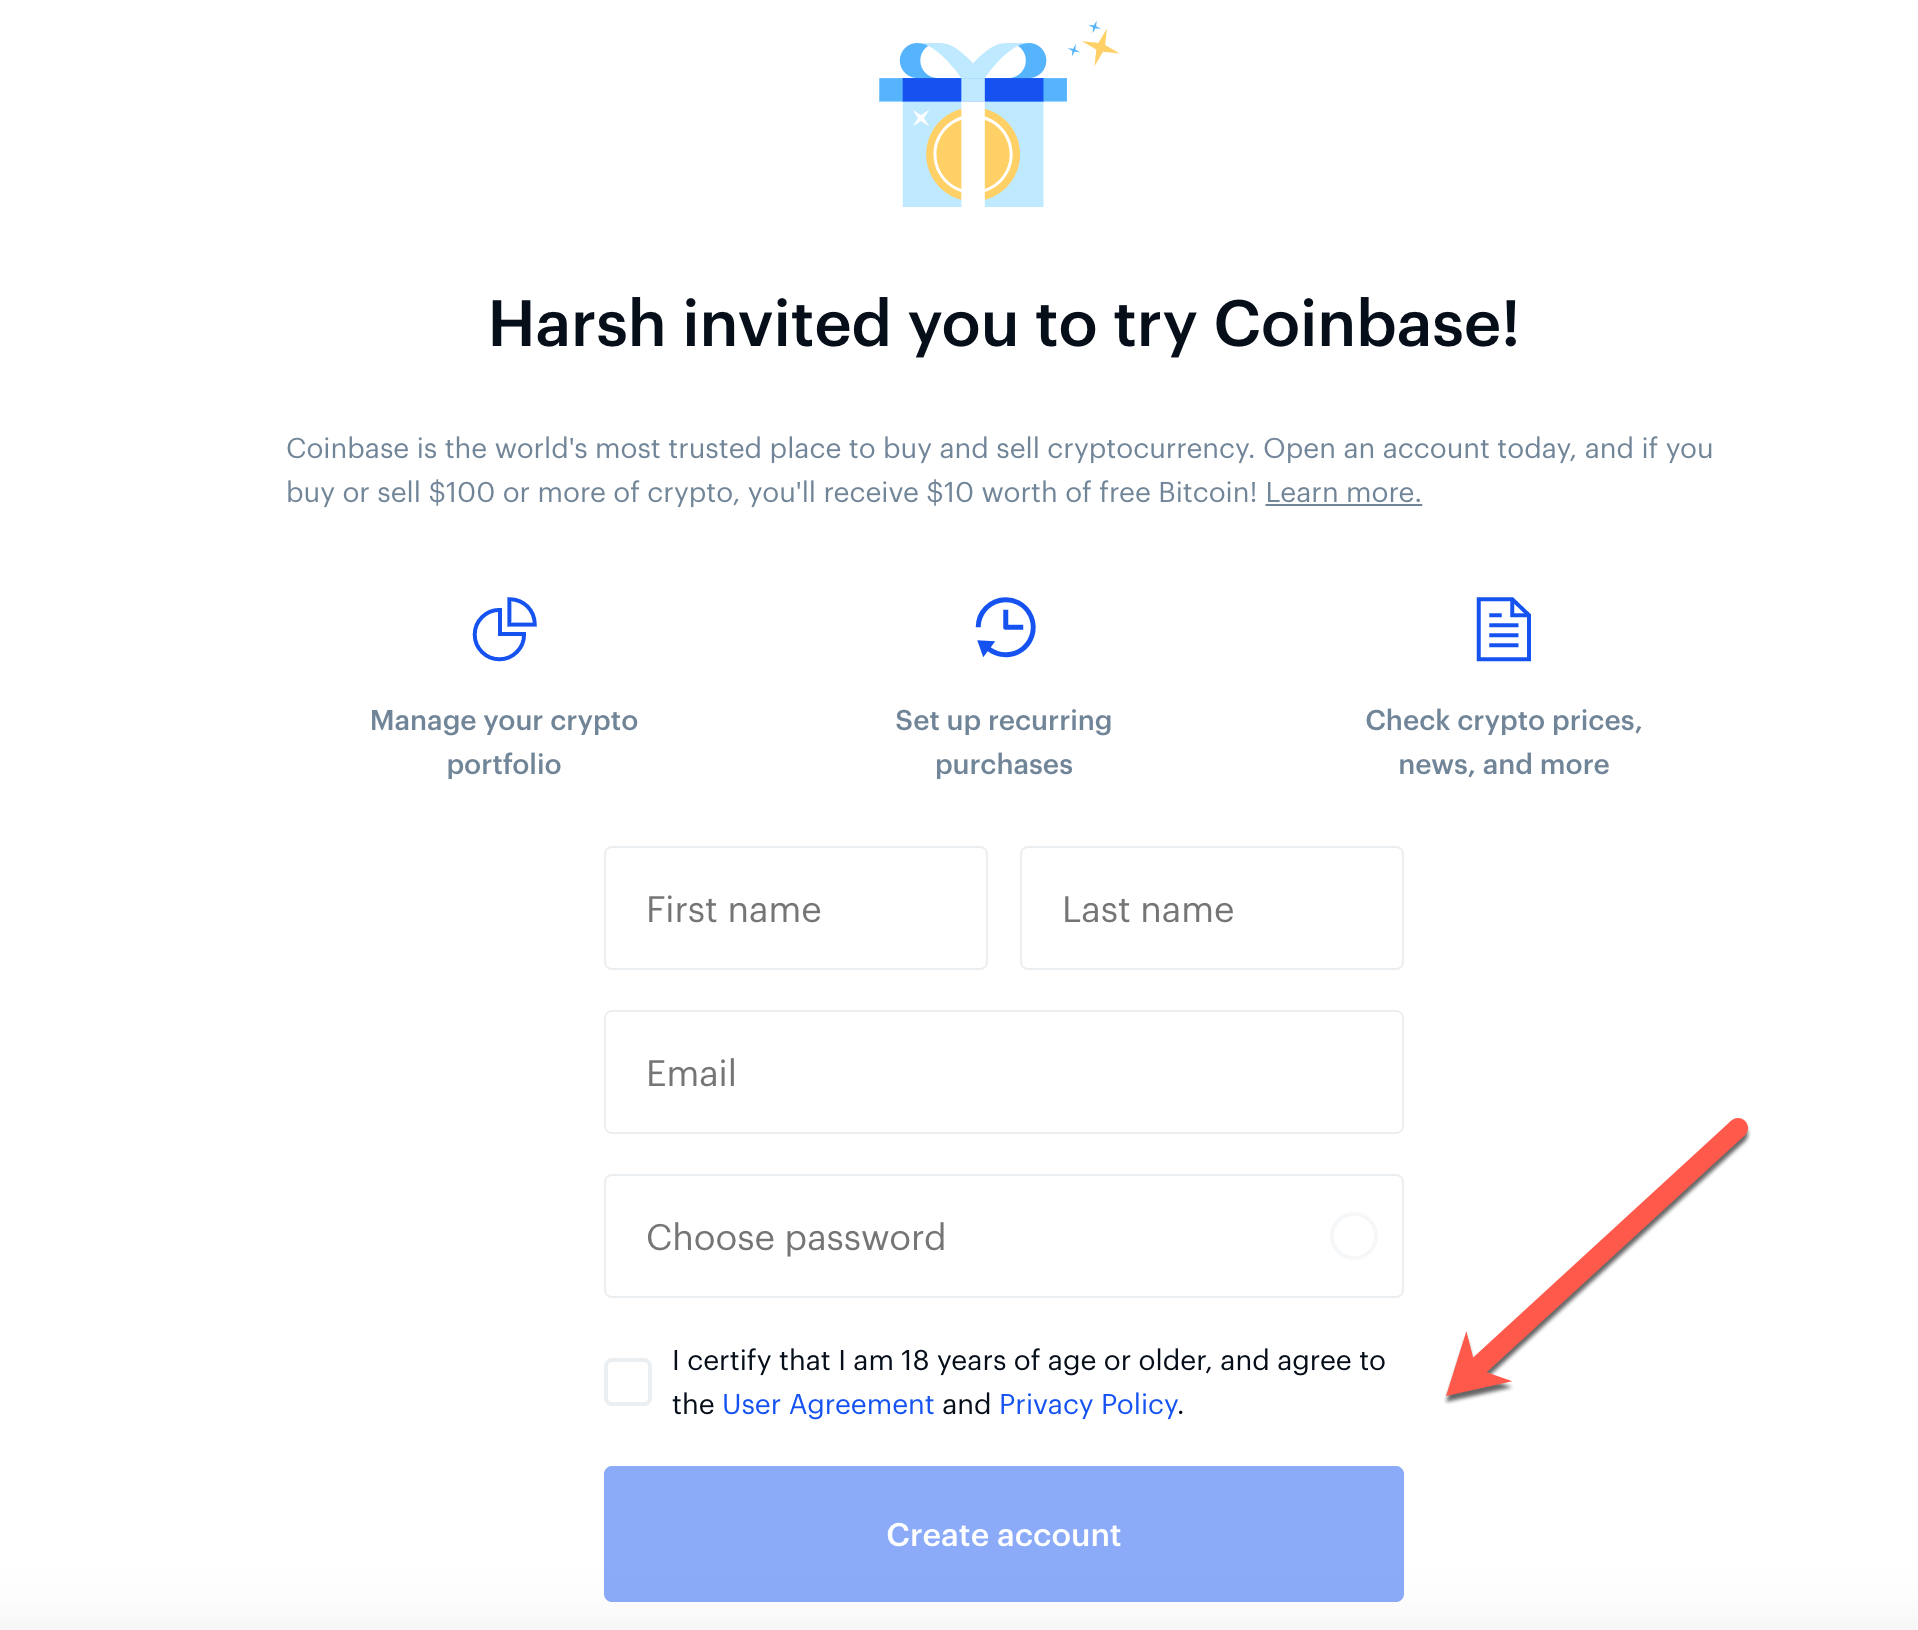 can you buy bitcoin instantly on coinbase